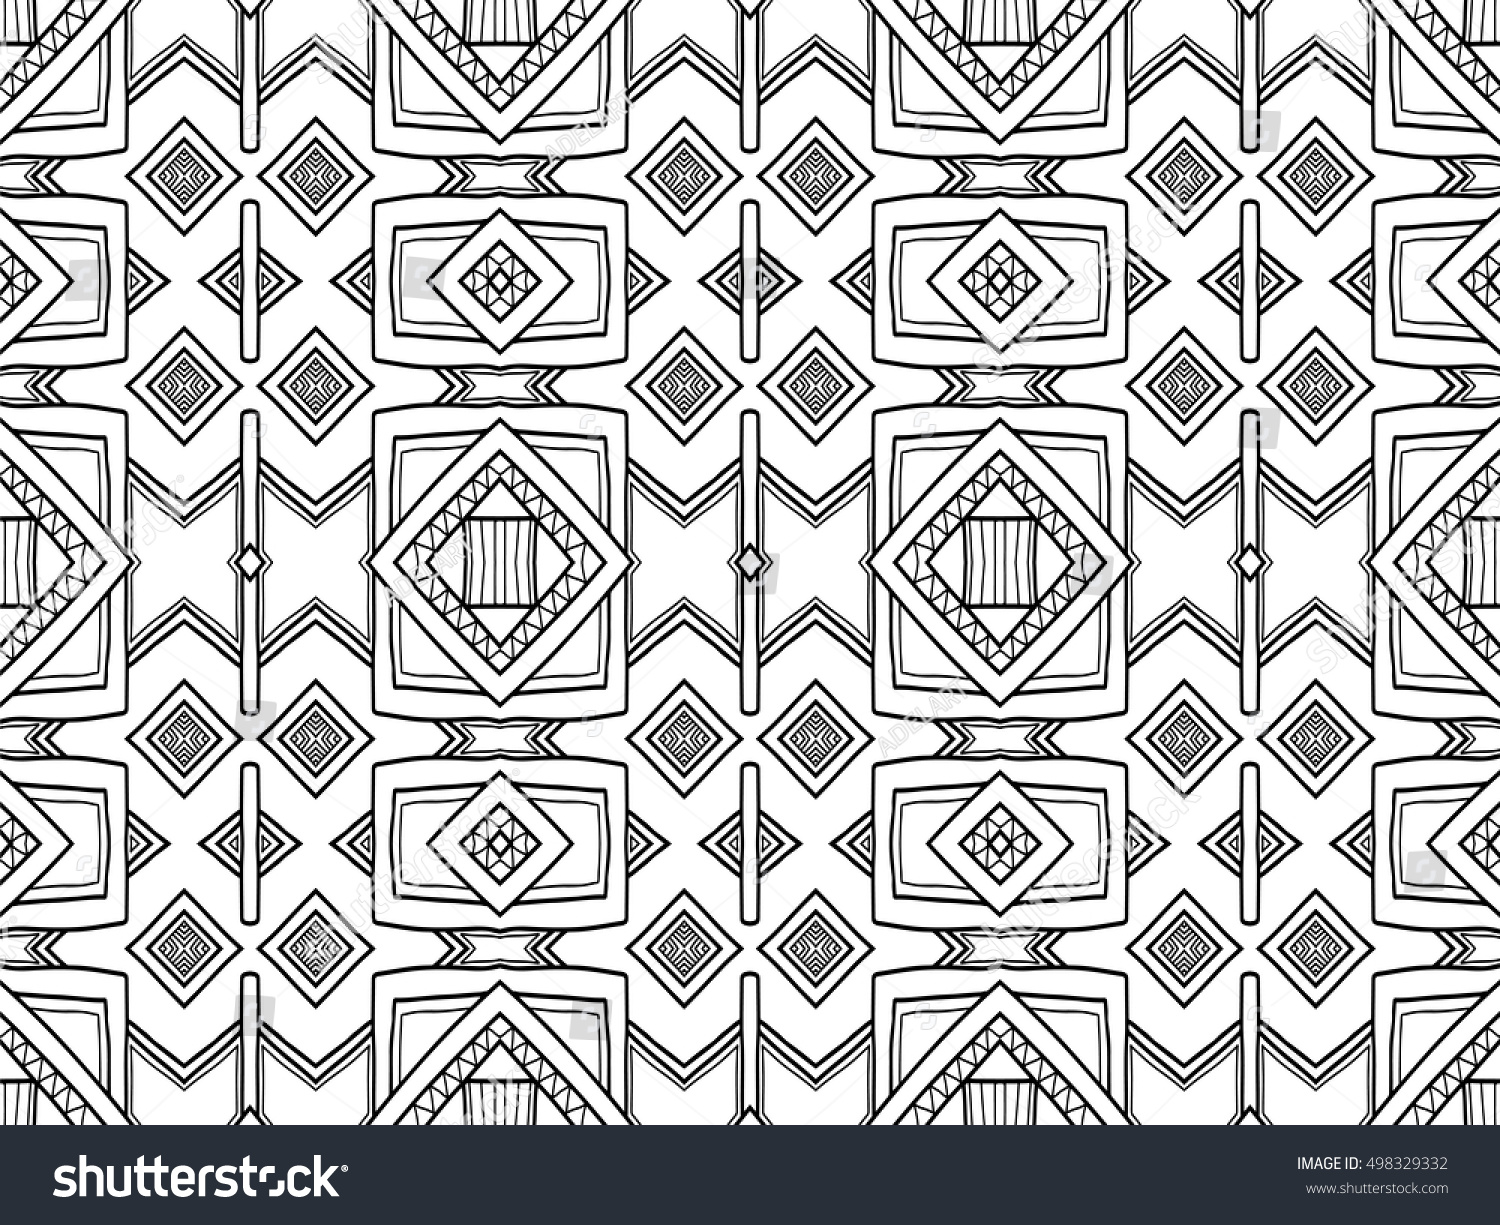 Stock Illustration Volleyball Tribal Abstract Vector: Abstract Background Black White Ethnic Texture เวกเตอร์